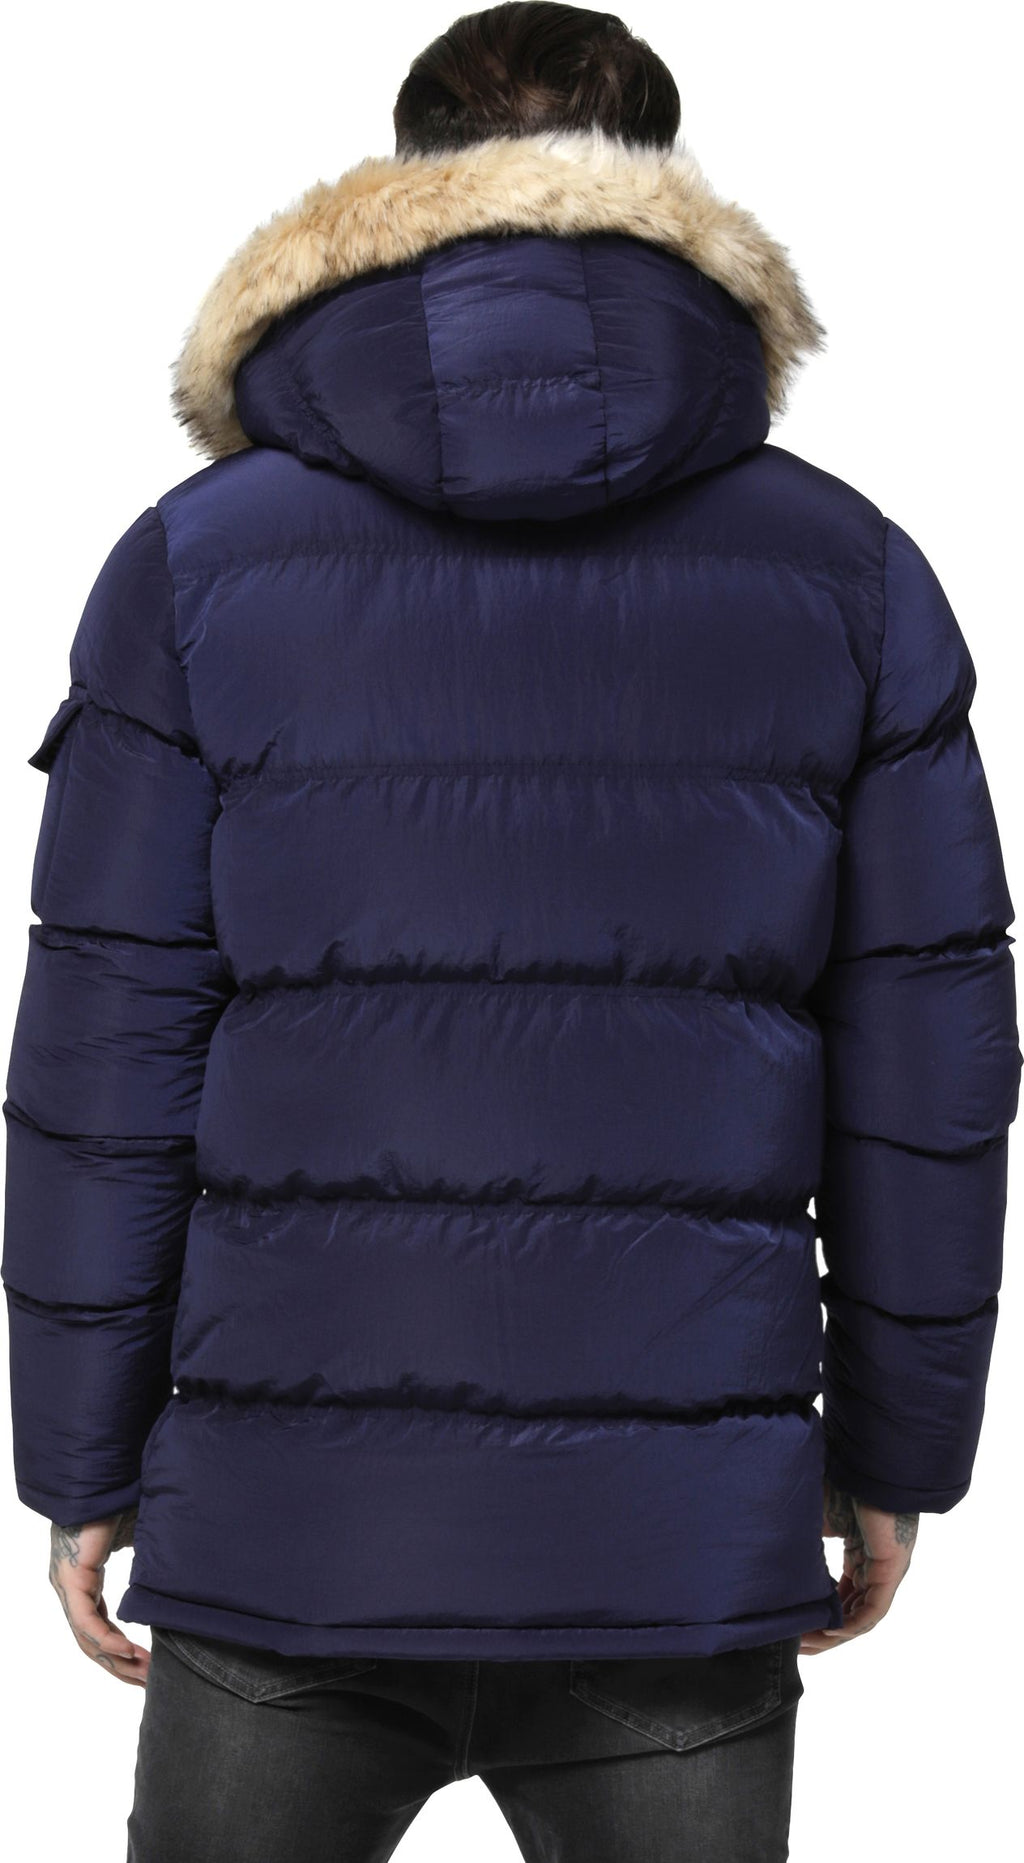 Sik Silk Shiny Puff Parka Jacket Navy